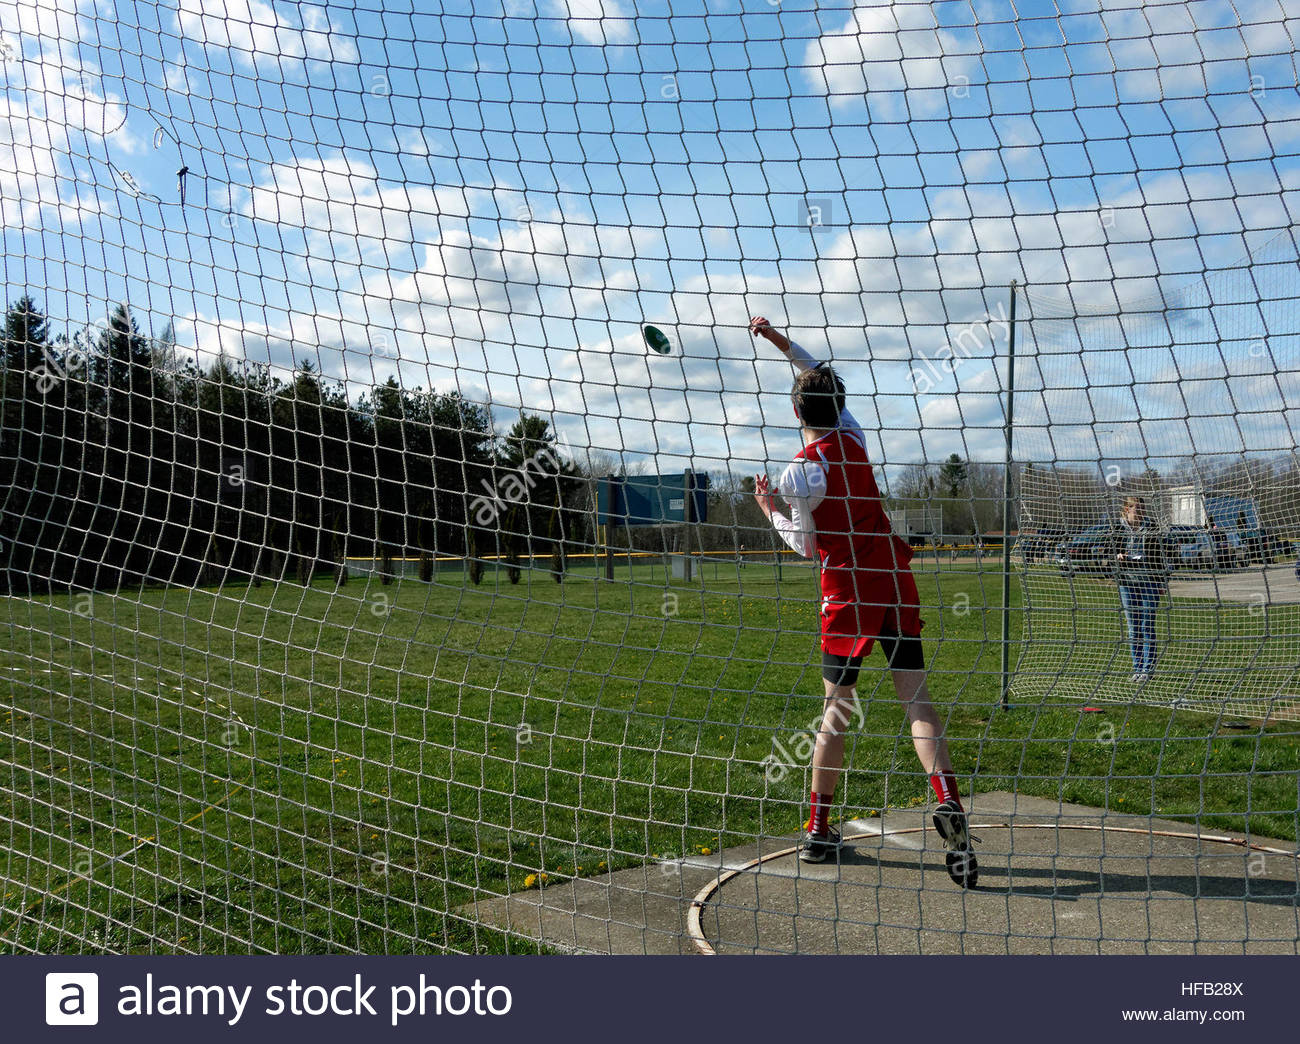 Discus throw at a track meet. - Stock Image